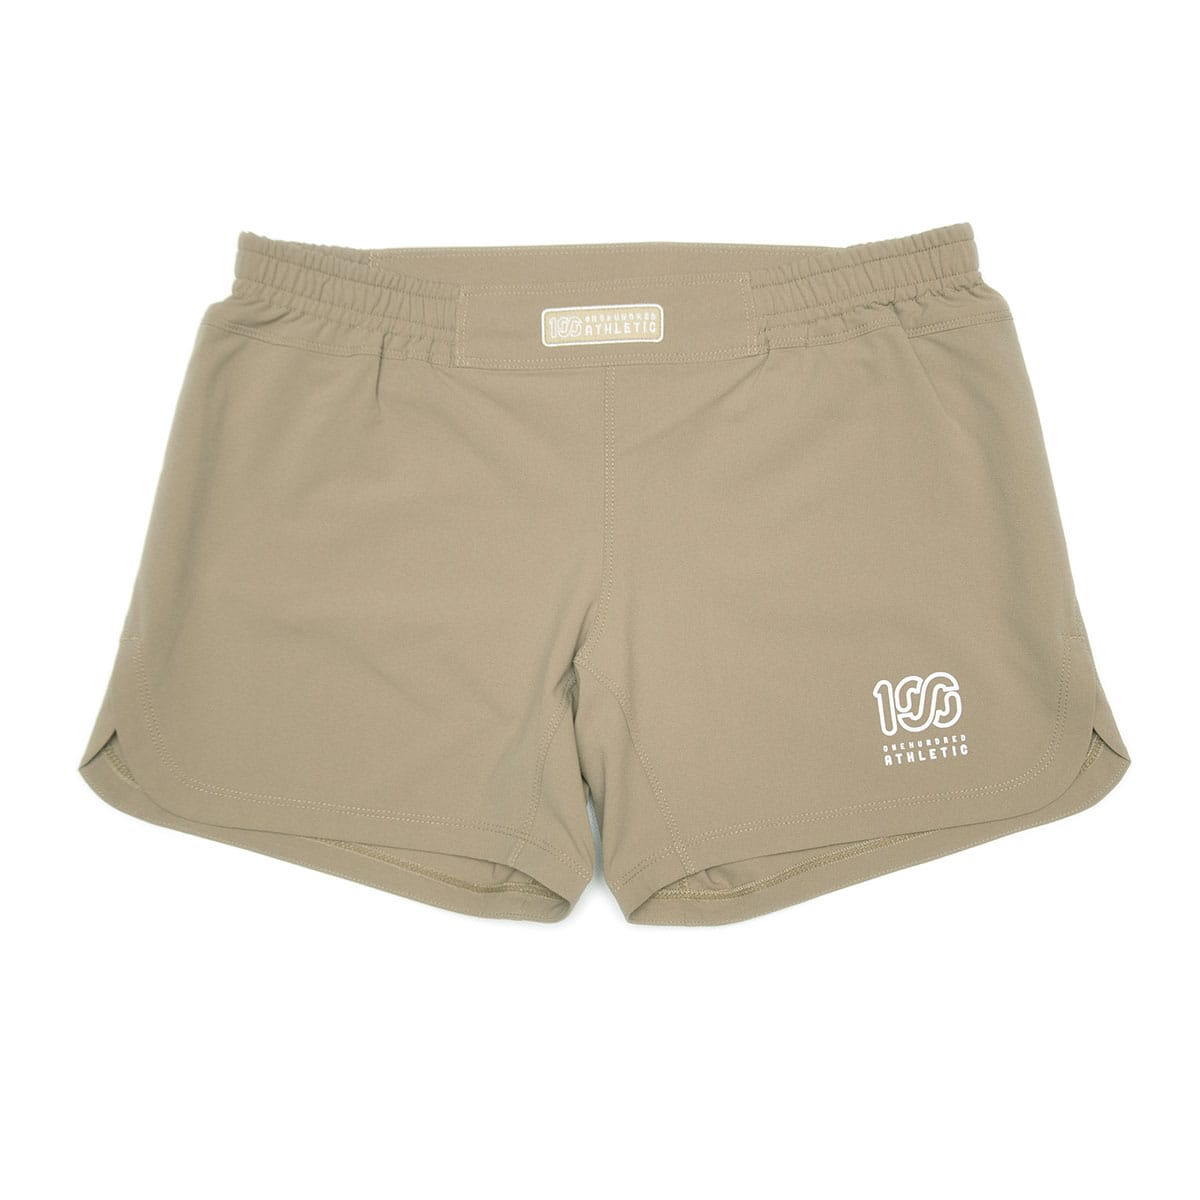 100A DRY WORKOUT SHORTS BEIGE 20SU-I_photo_large